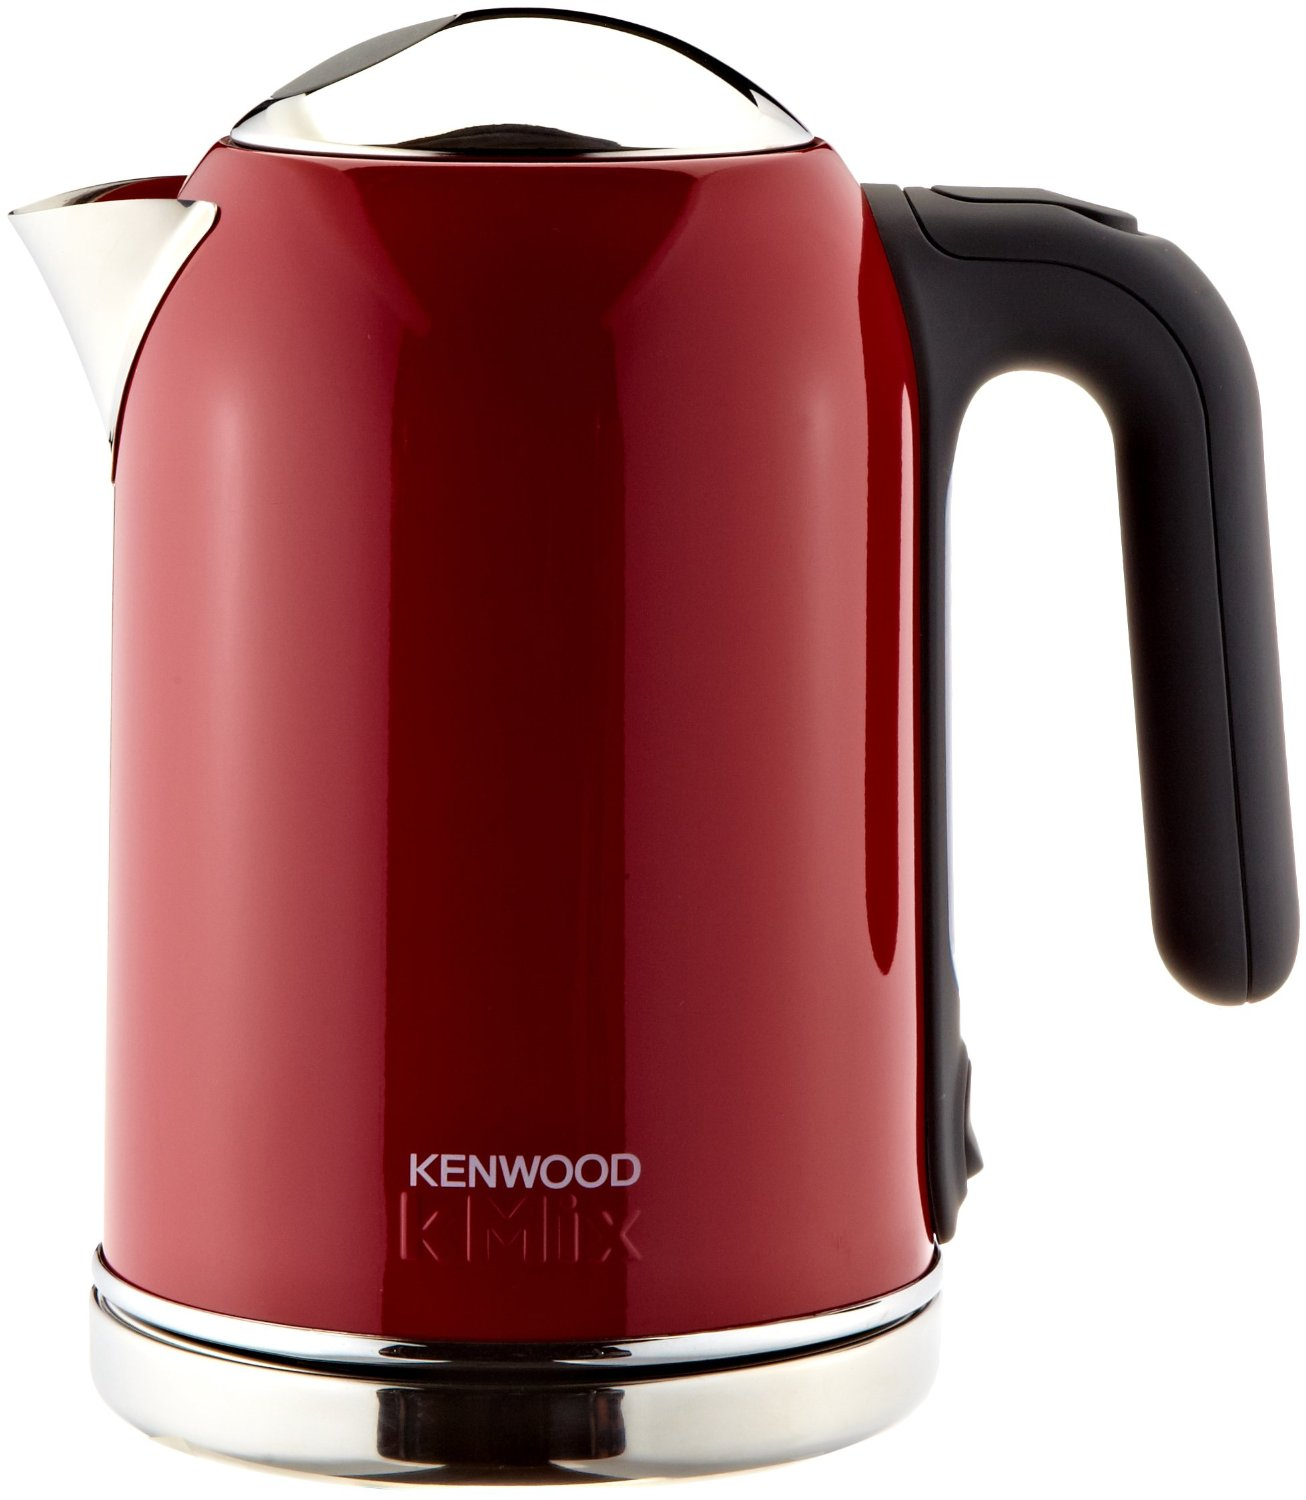 kenwood wasserkocher kmix sjm 031 1 6 liter chili rot ebay. Black Bedroom Furniture Sets. Home Design Ideas